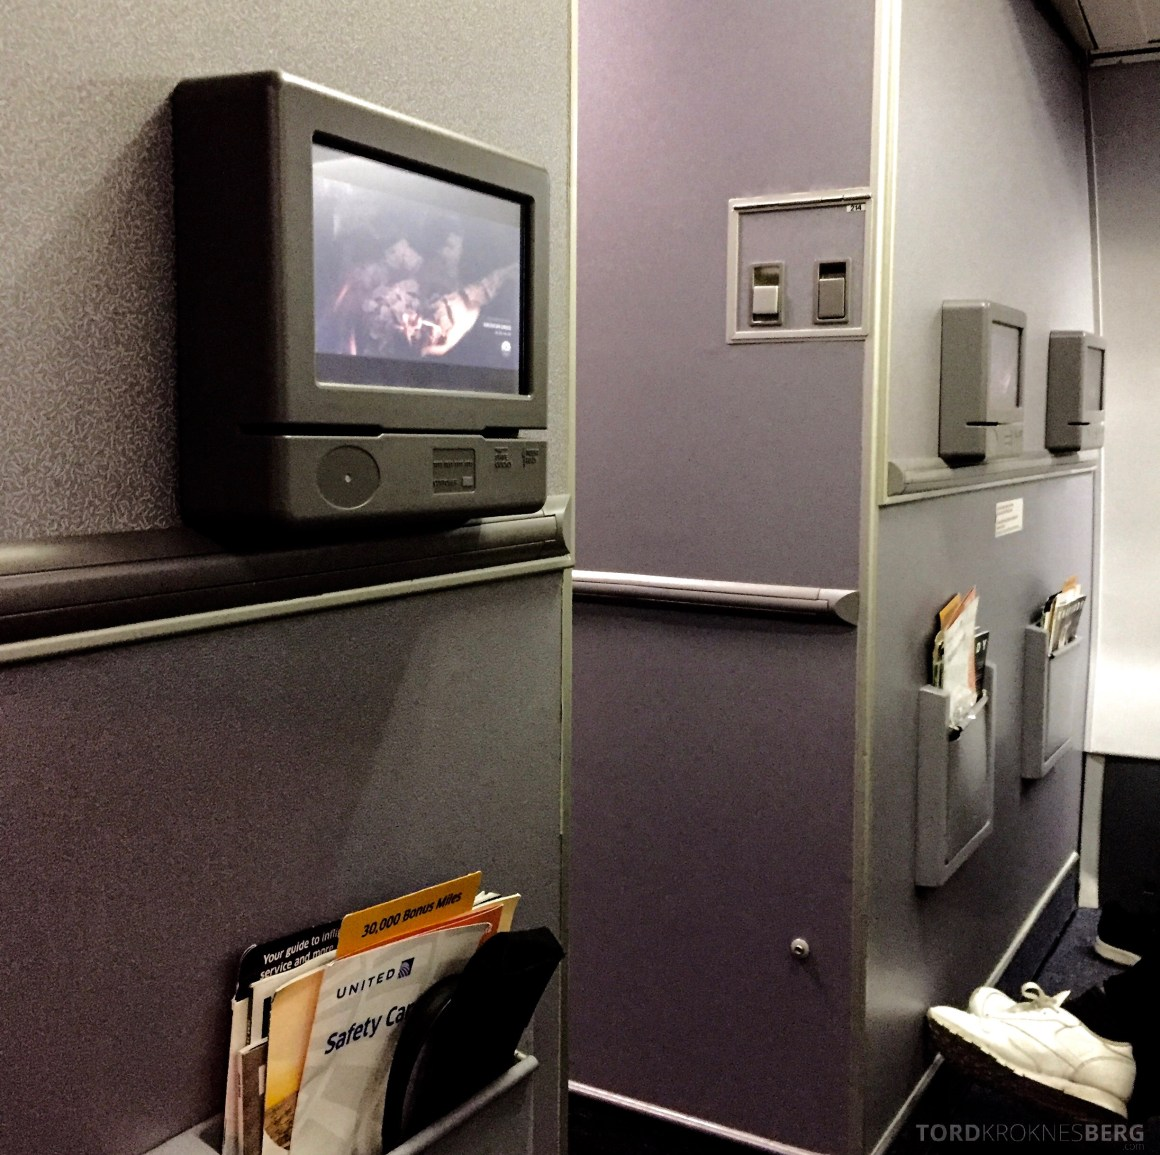 United Airlines Business Class skjerm